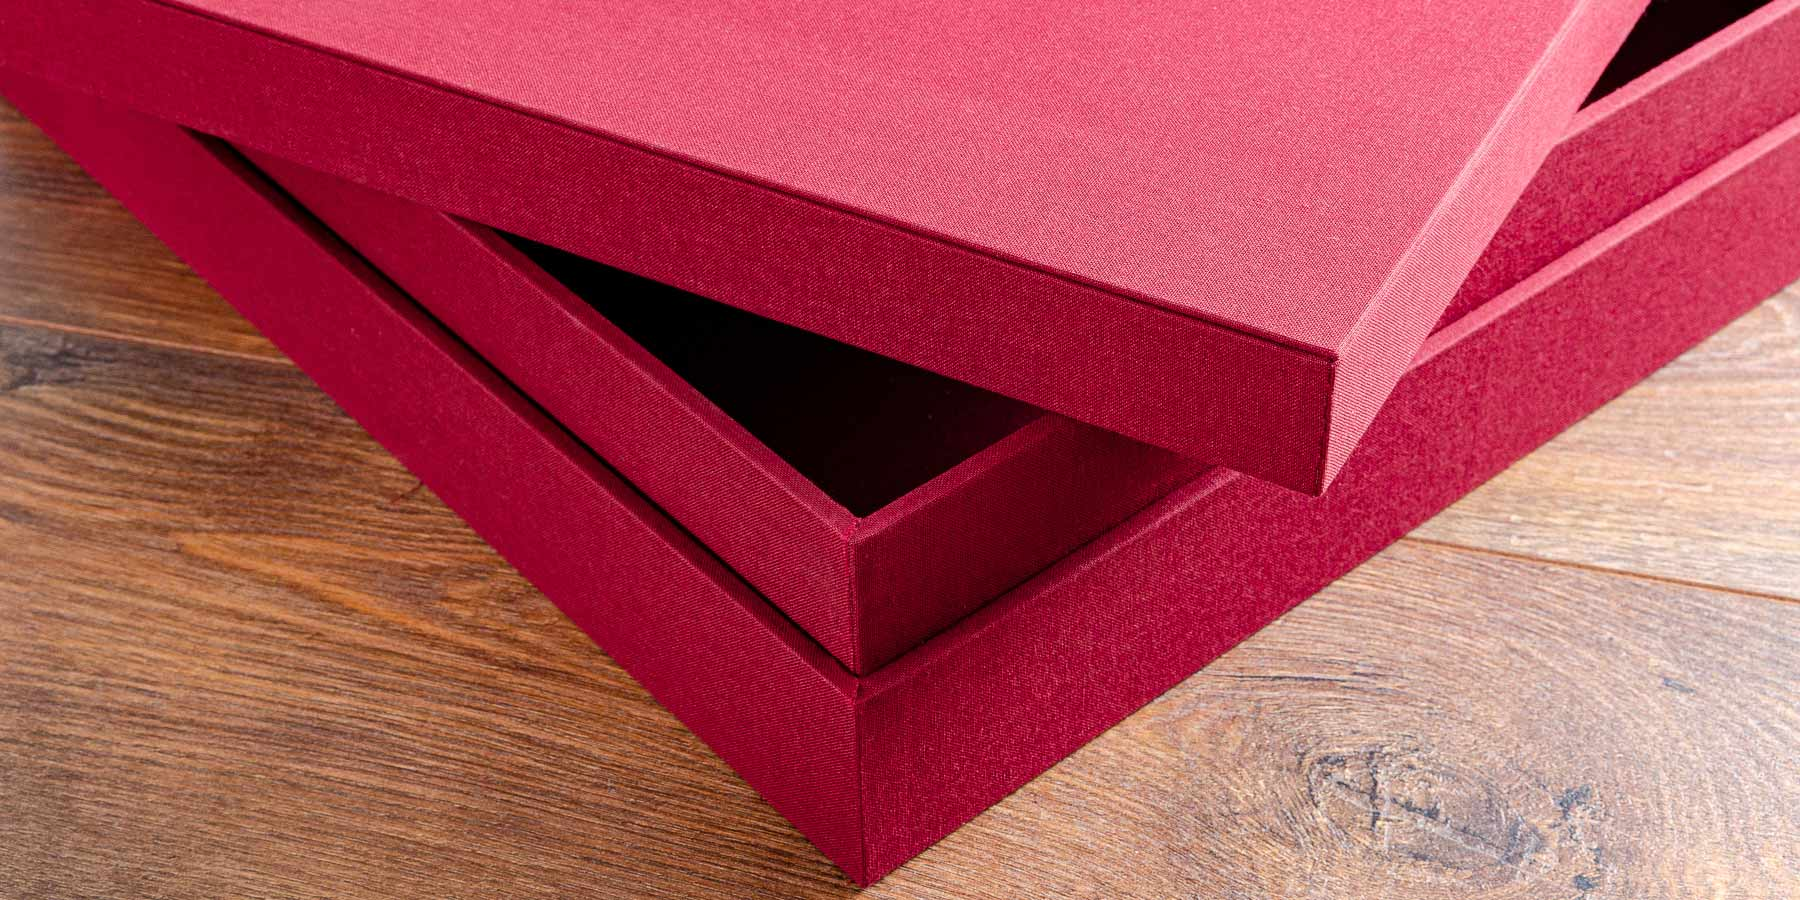 the attention to detail and strength that goes into making a custom presentation or keepsake box